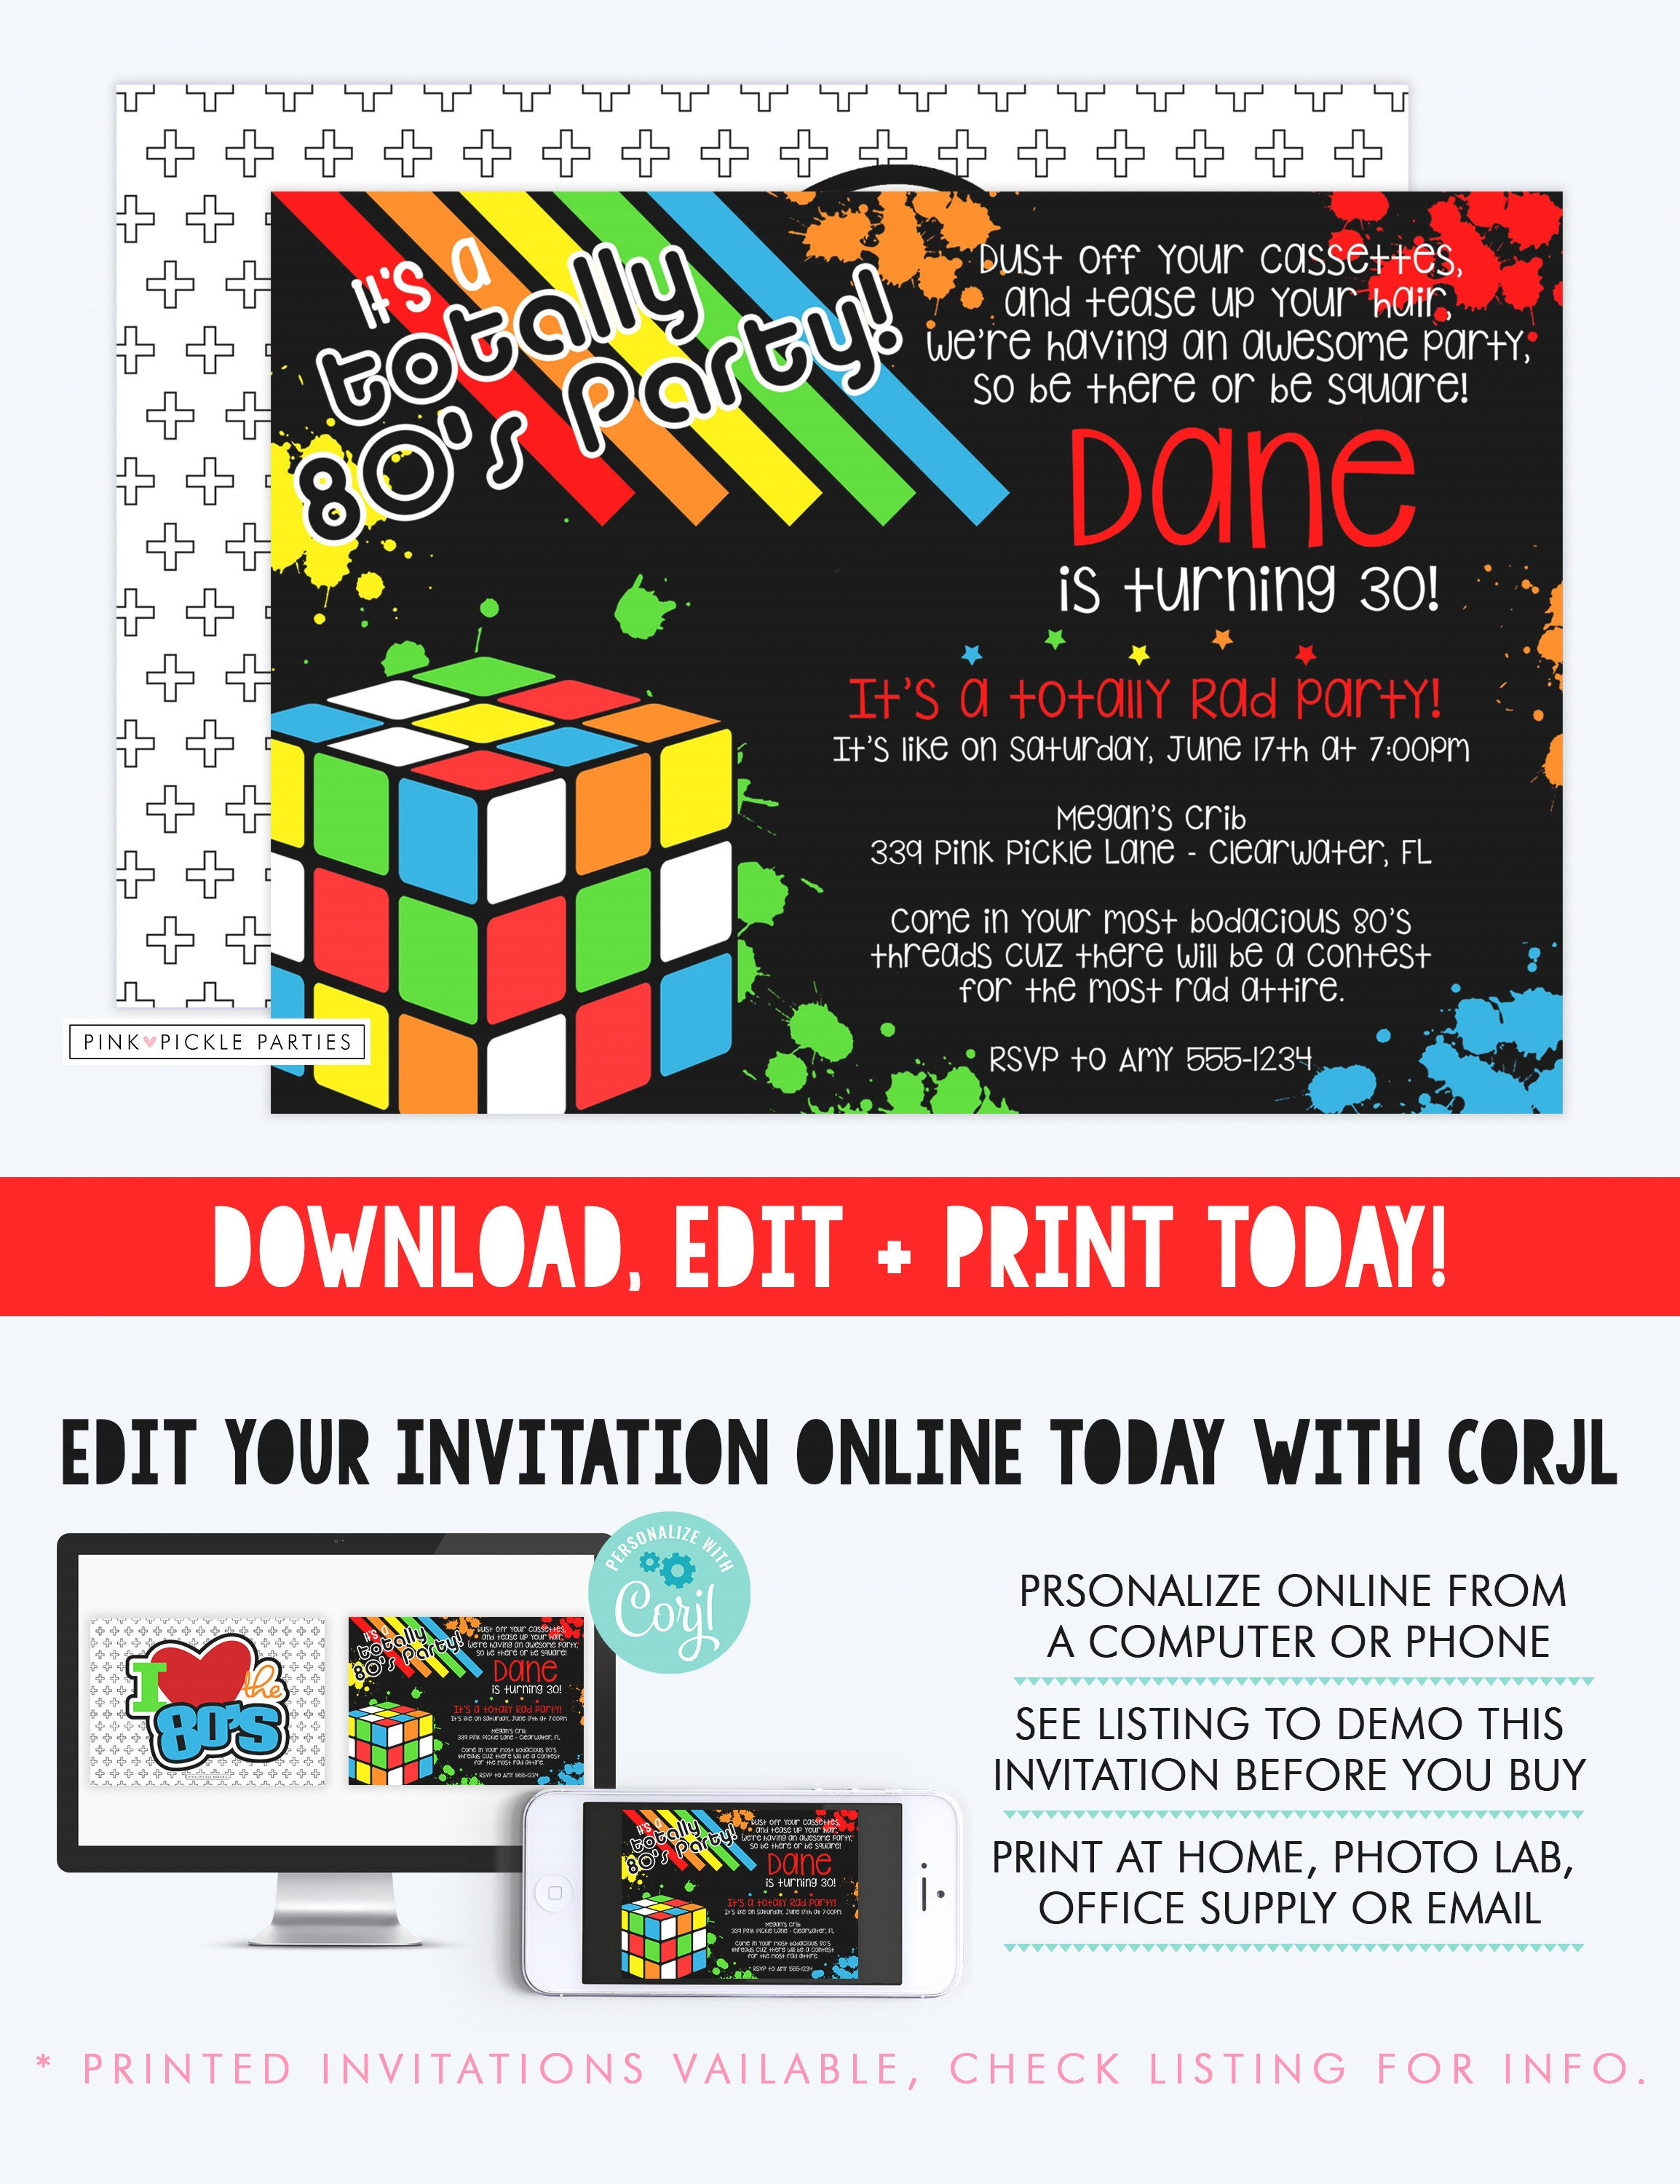 Awesome 80s Theme Birthday Invitations Image - Invitations and ...